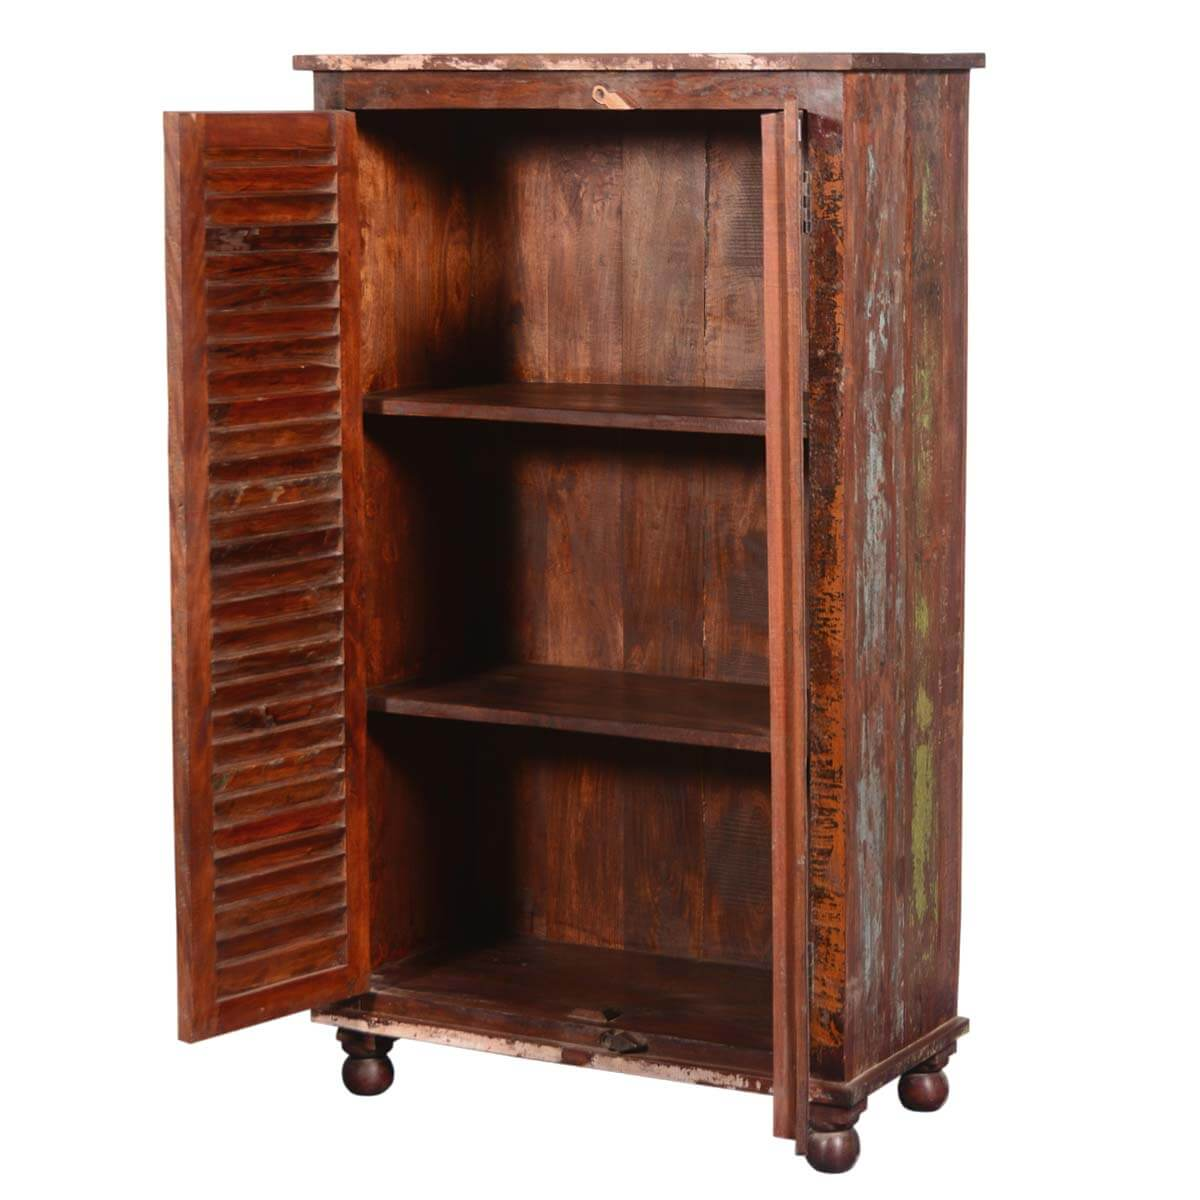 Britton painted shutter doors reclaimed wood armoire